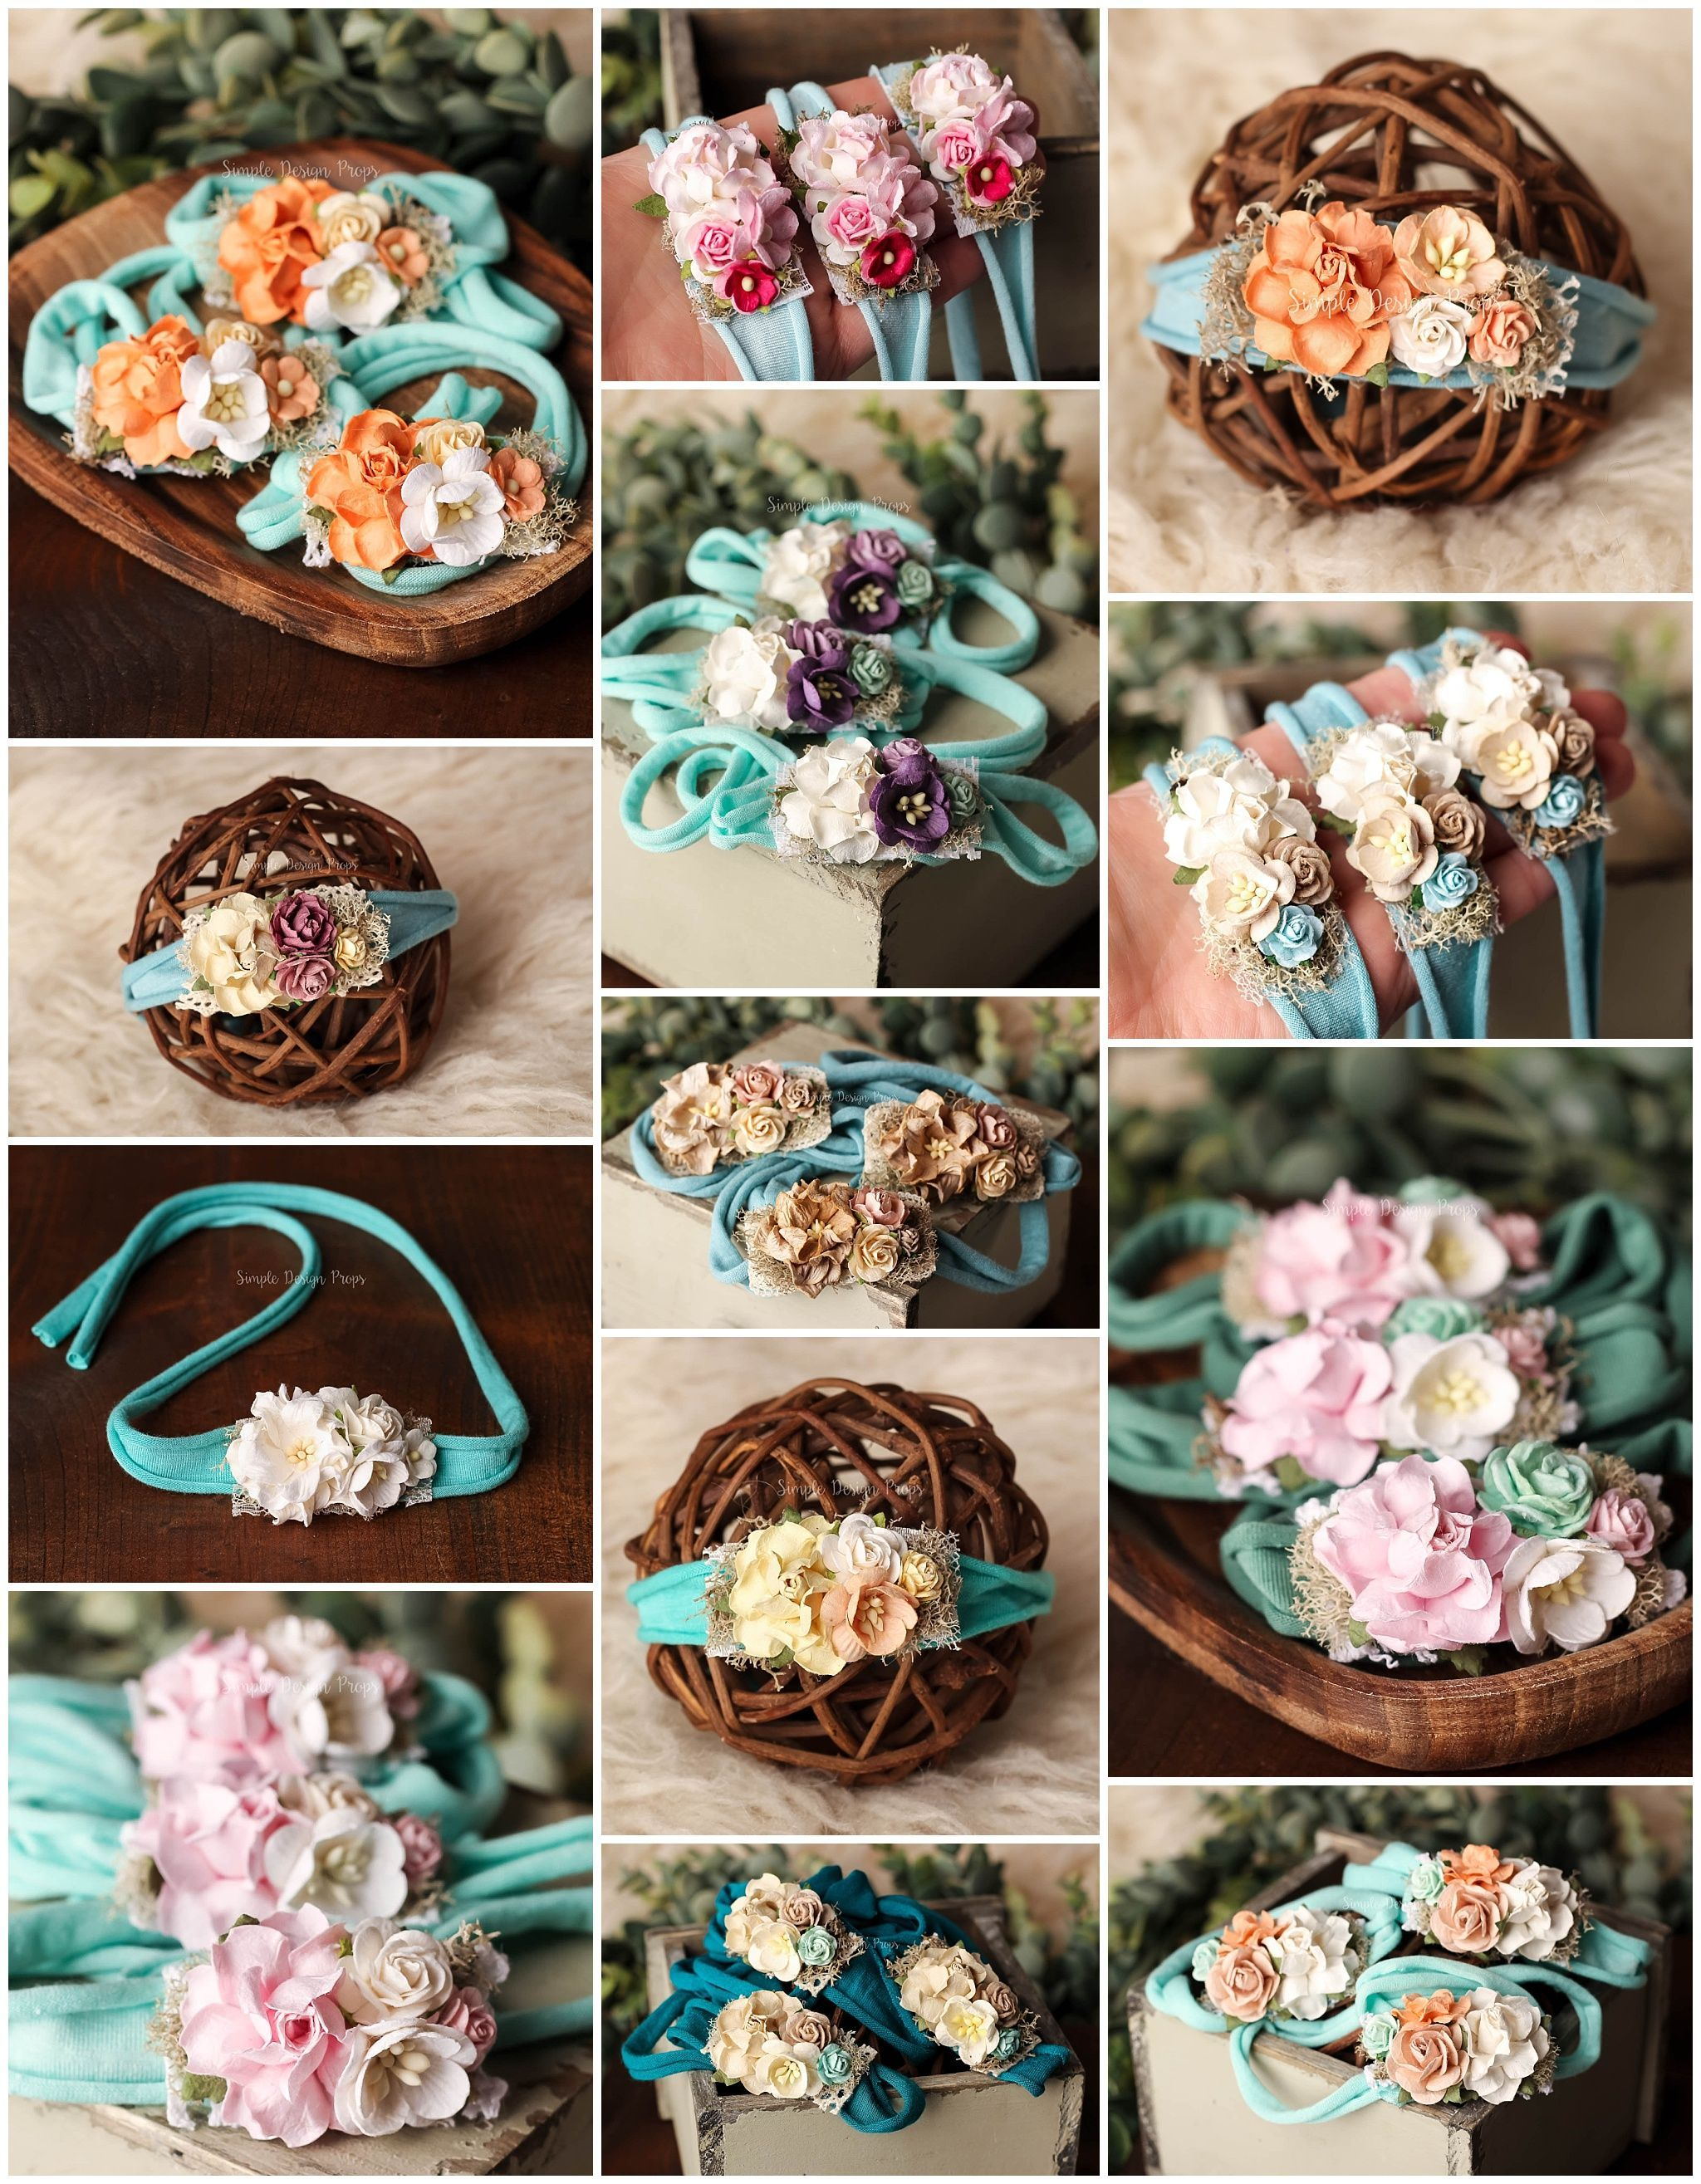 for baby newborn and sitter RTS flower tie back in teal and white photo prop